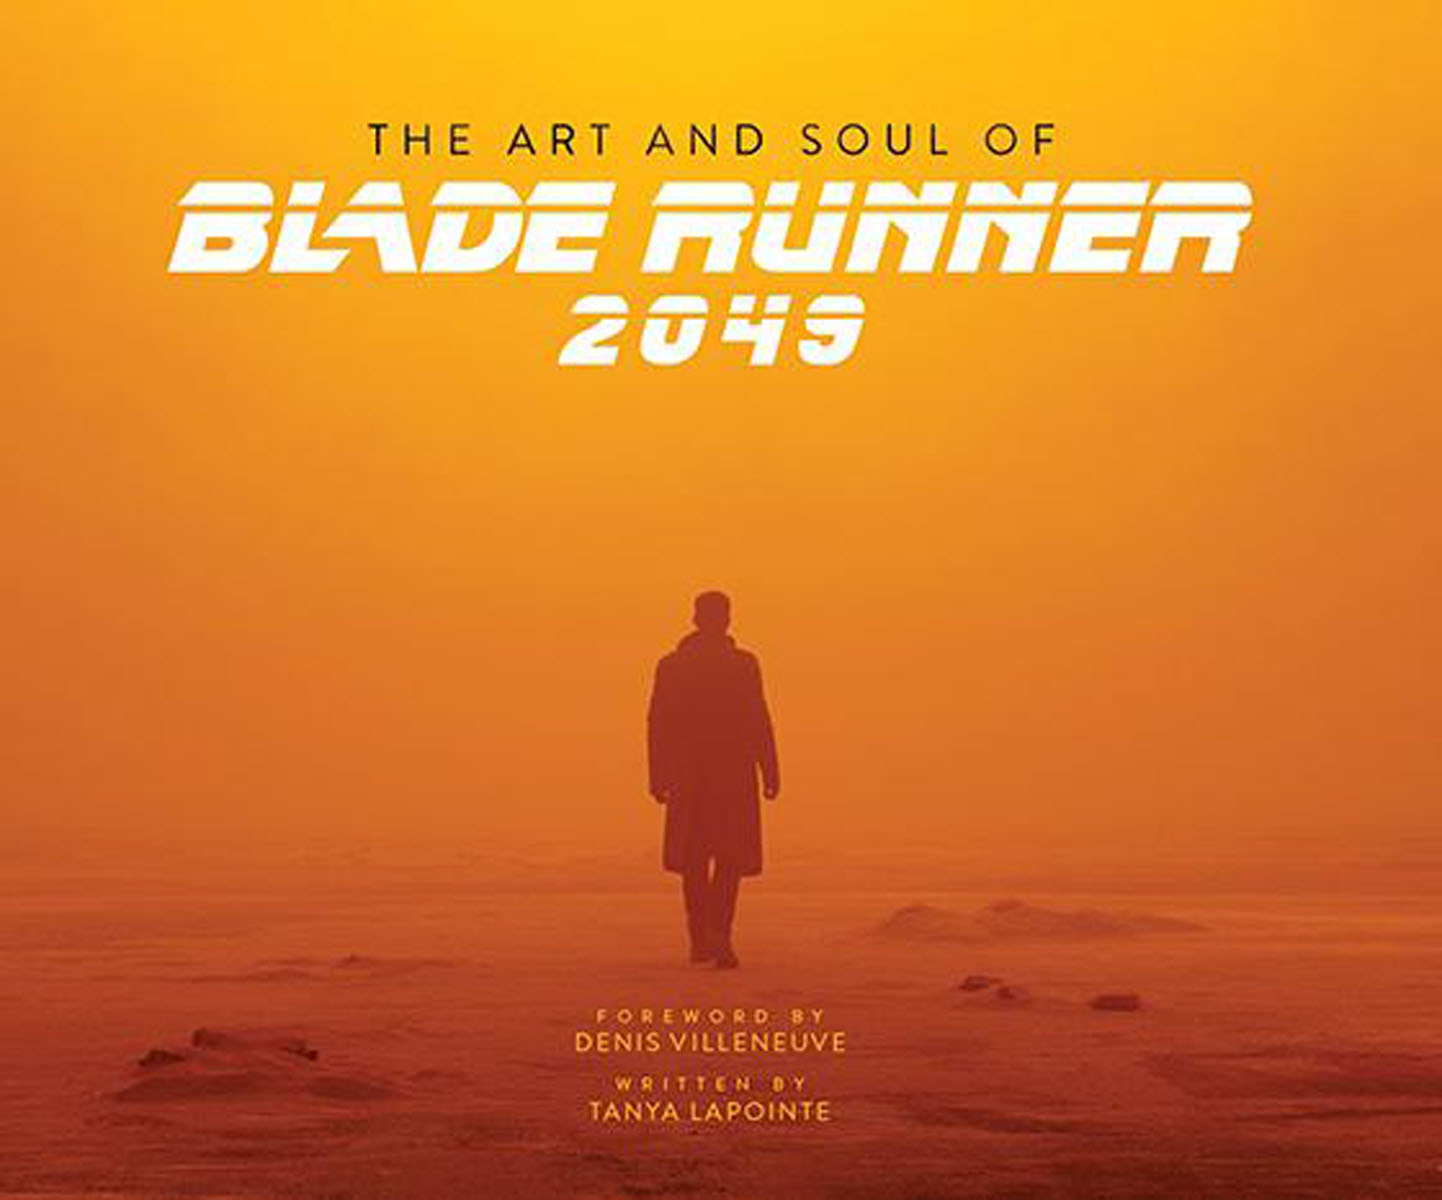 The Art and Soul of Blade Runner 2049 roy neuberger r the passionate collector eighty years in the world of art